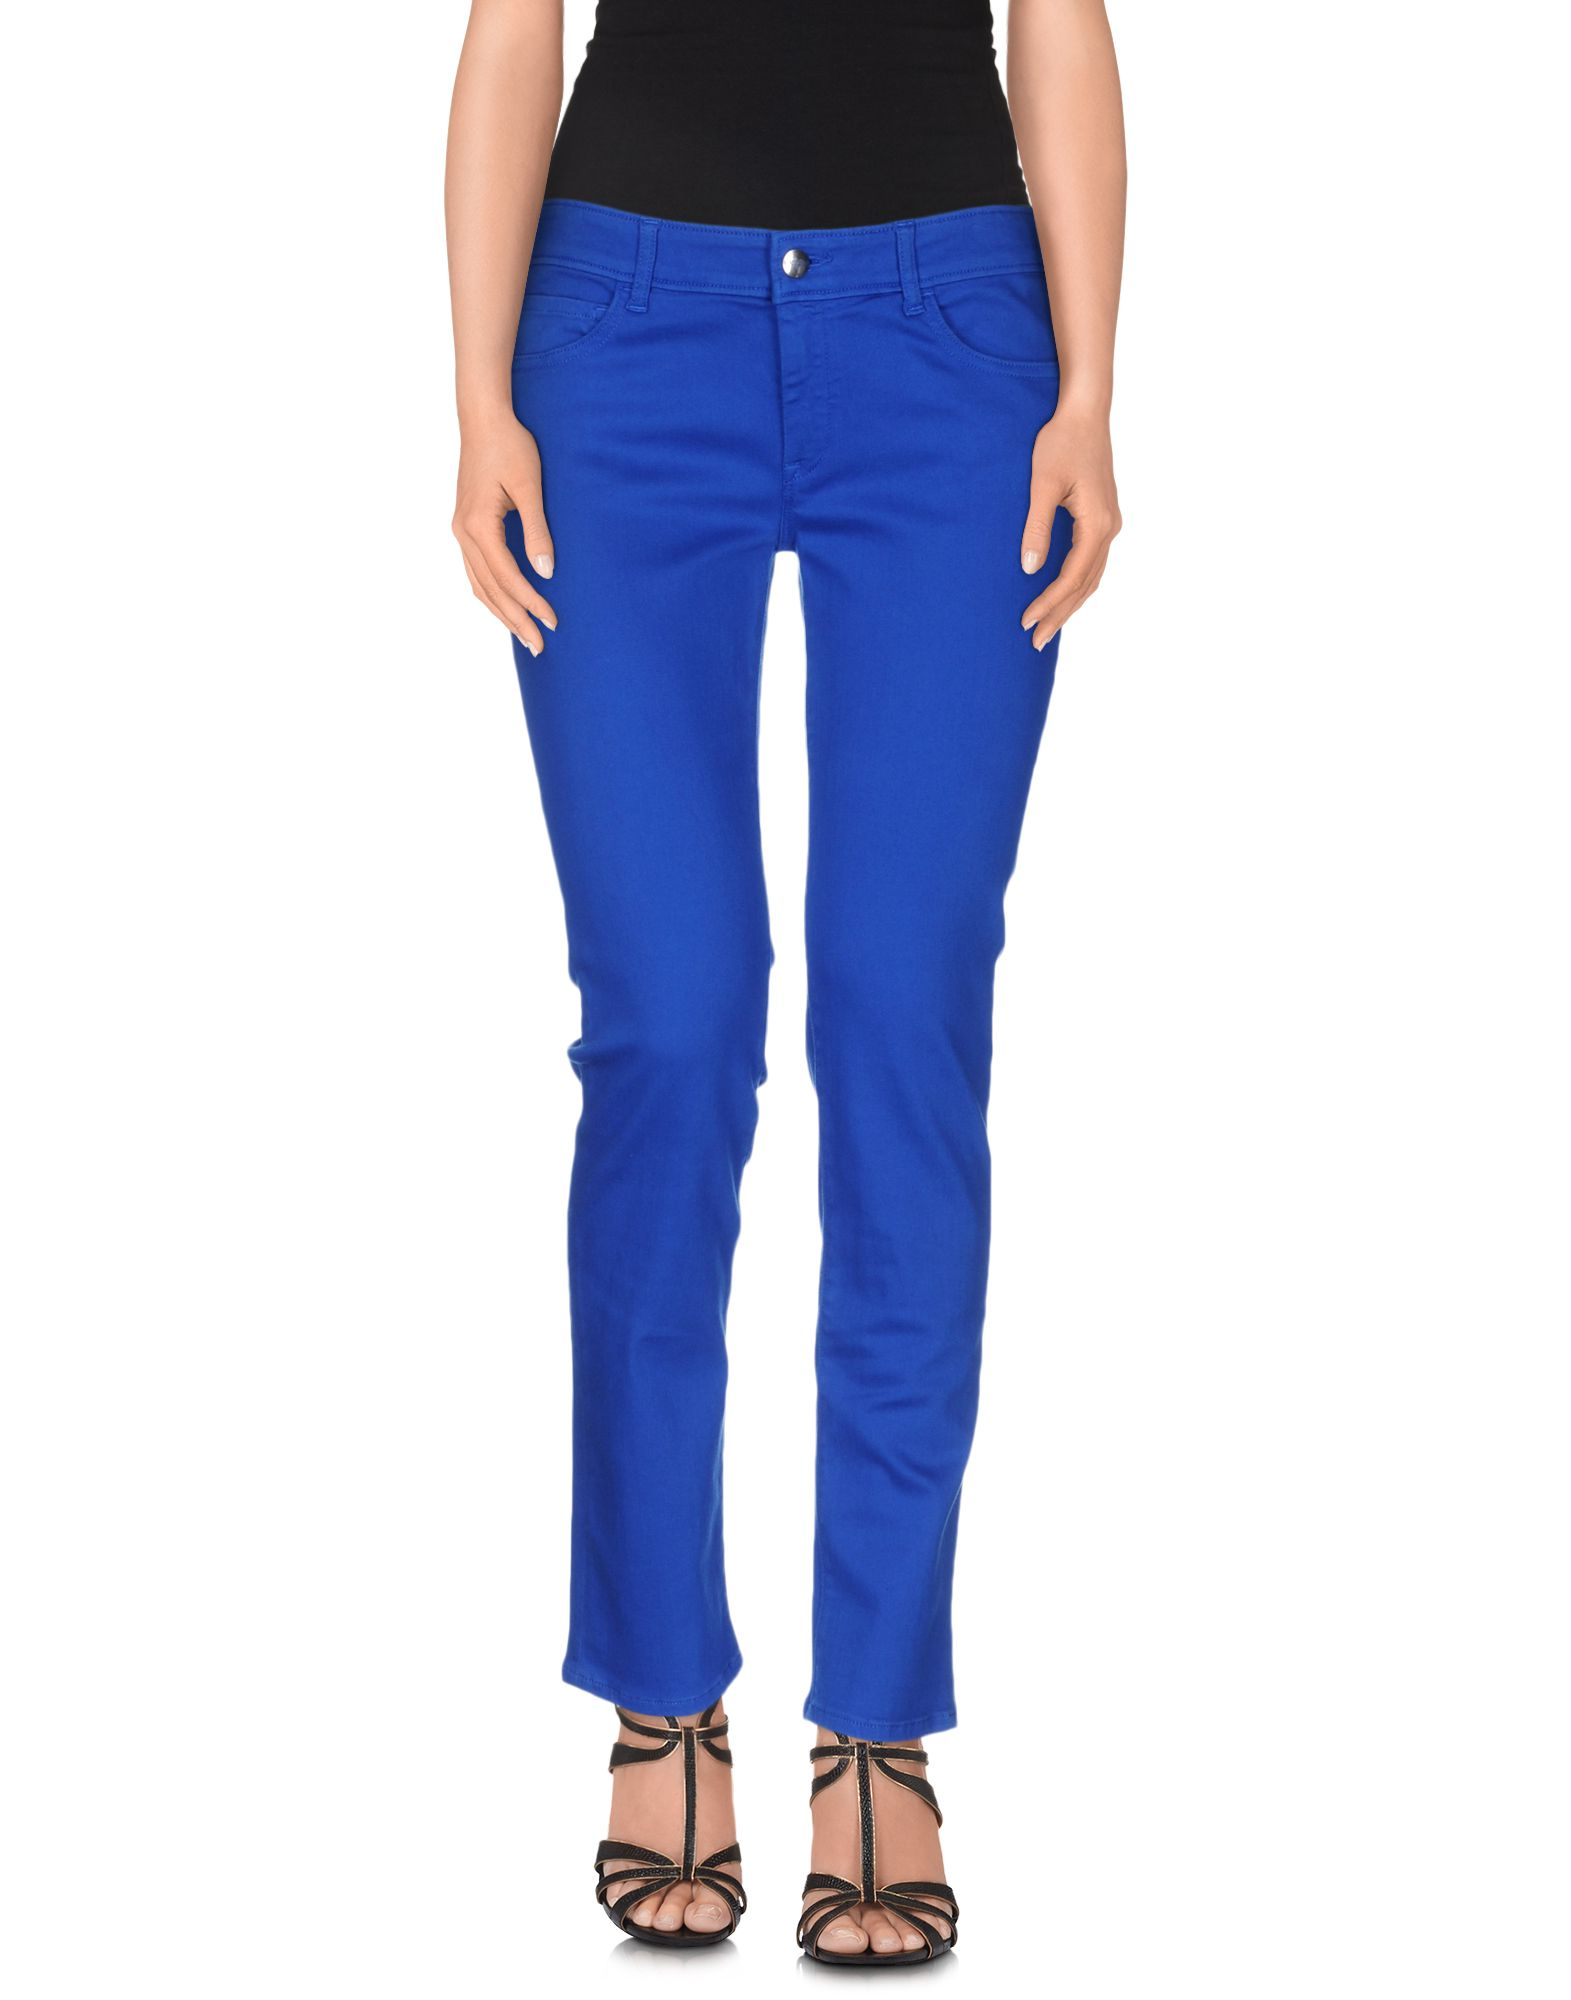 THE SEAFARER Jeans